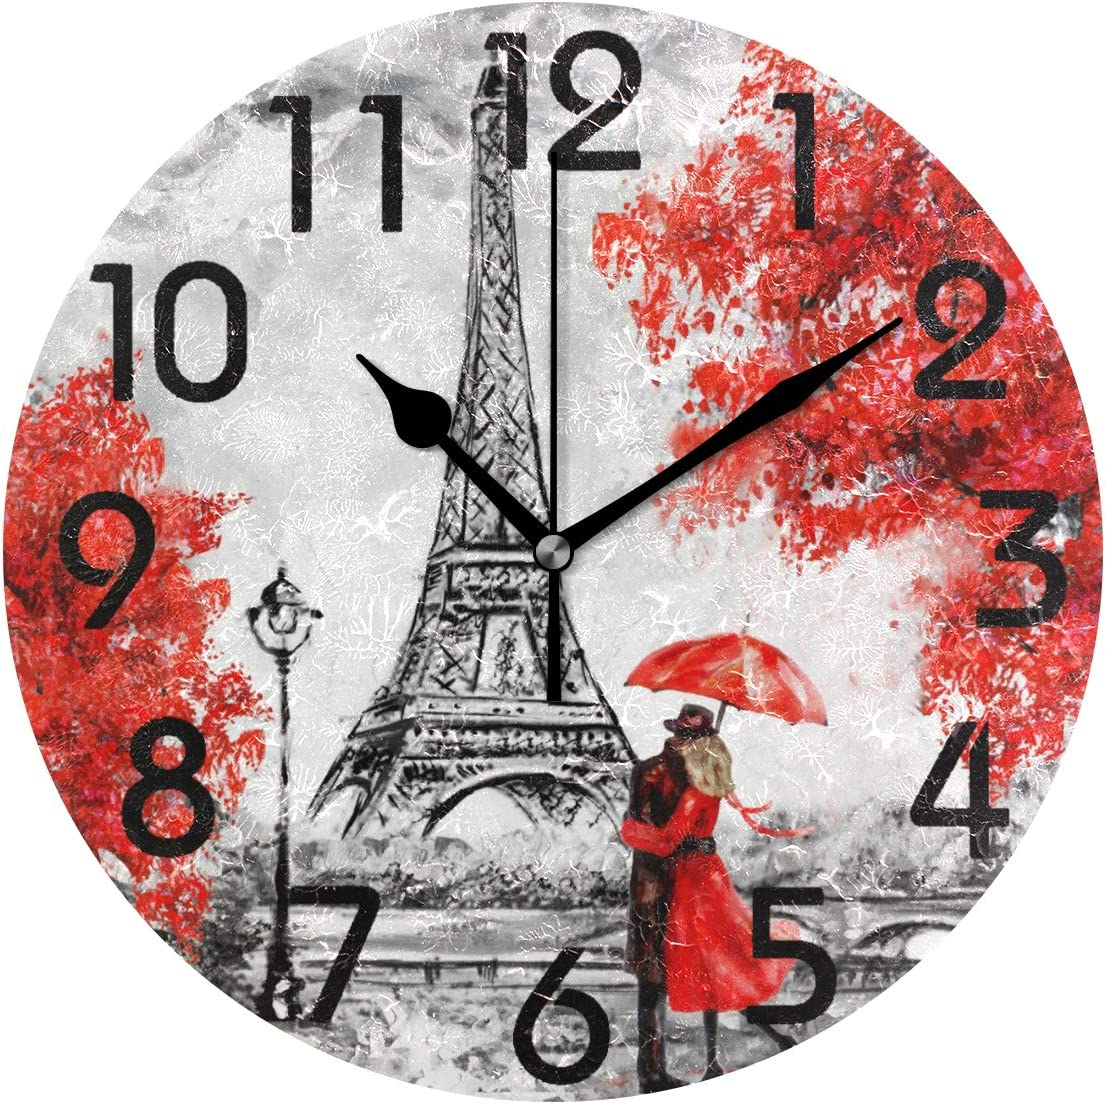 Naanle Trendy Romantic Eiffel Tower Paris Painting Print Round Wall Clock, 9.5 Inch Battery Operated Quartz Analog Quiet Desk Clock for Home,Office,School